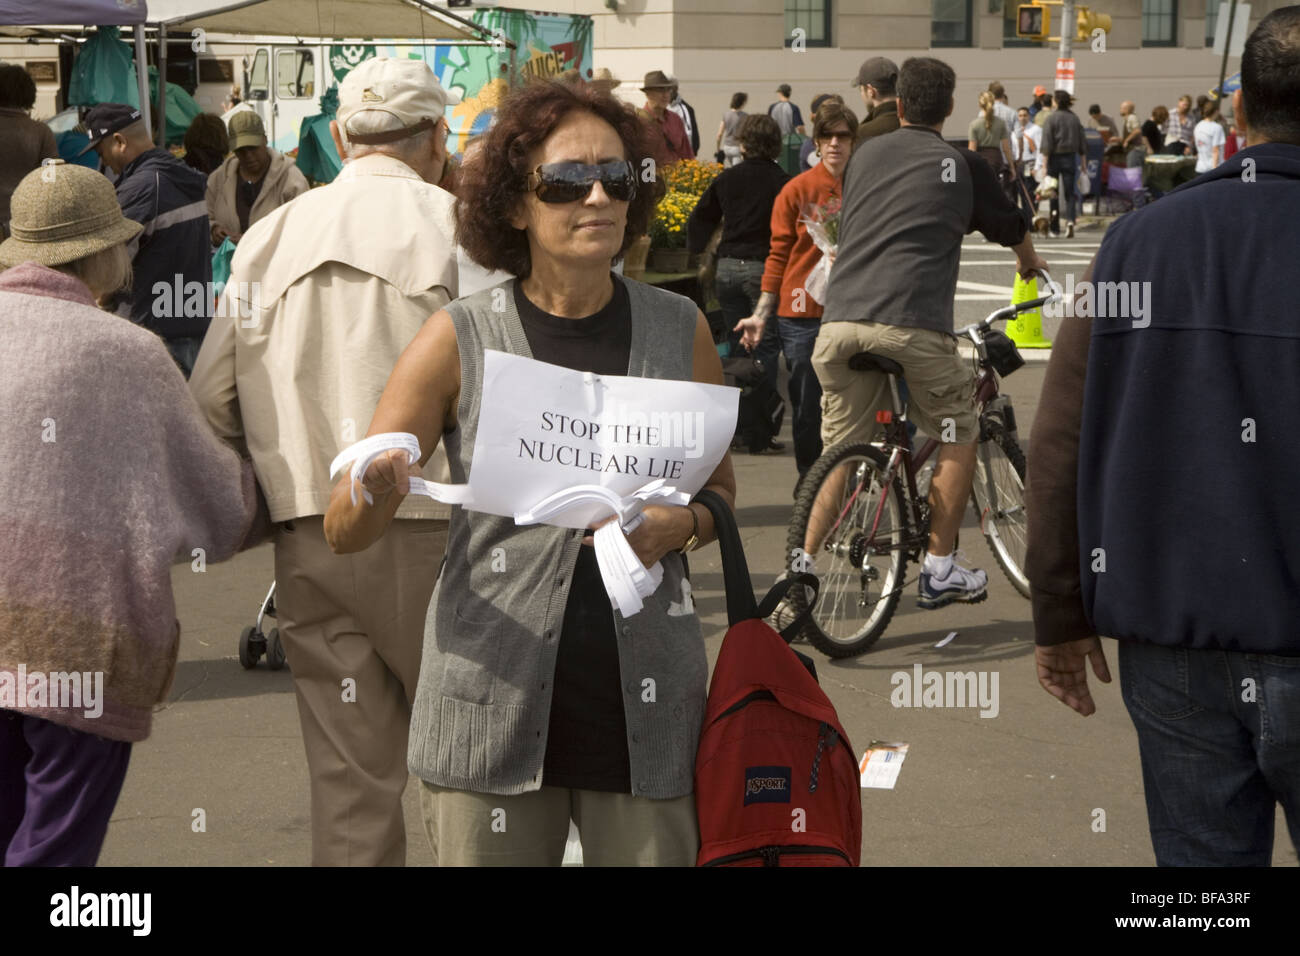 Antinuclear activist informing the public about the dangers of nuclear reactors and weapons in Brooklyn, New York. - Stock Image